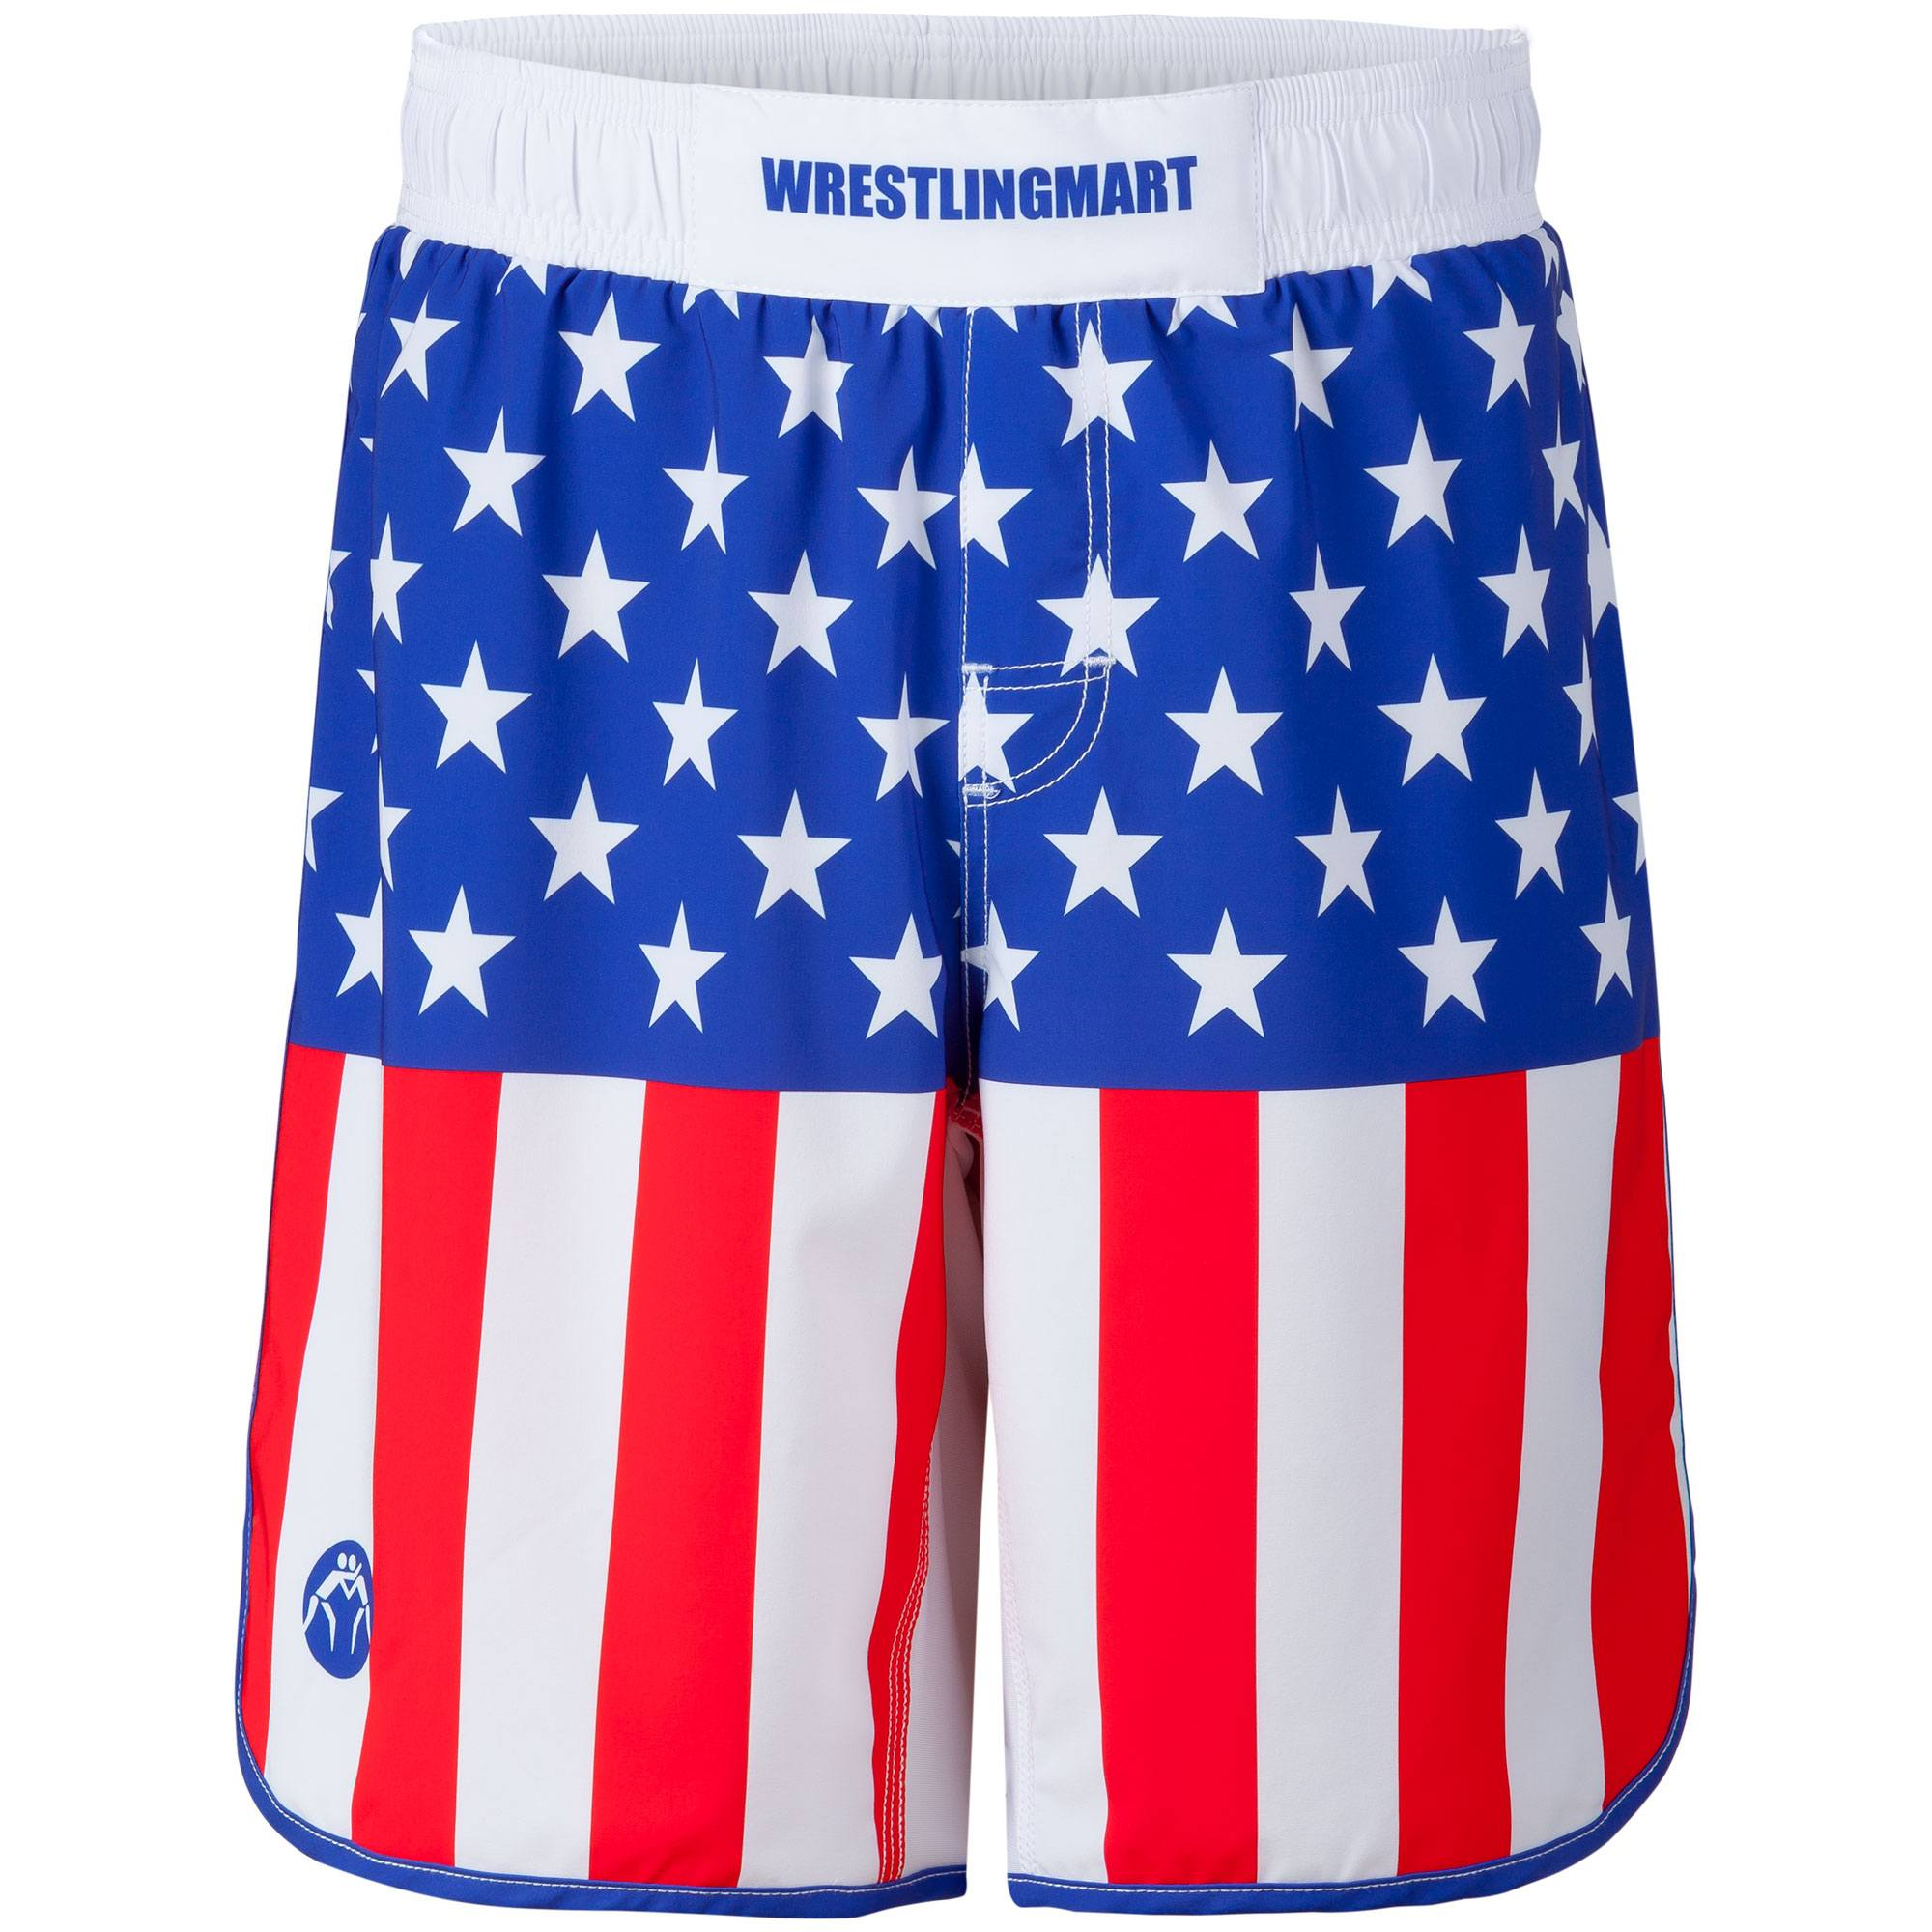 Woldorf USA Wrestling singlet Gym shorts team fighting Tournament competition